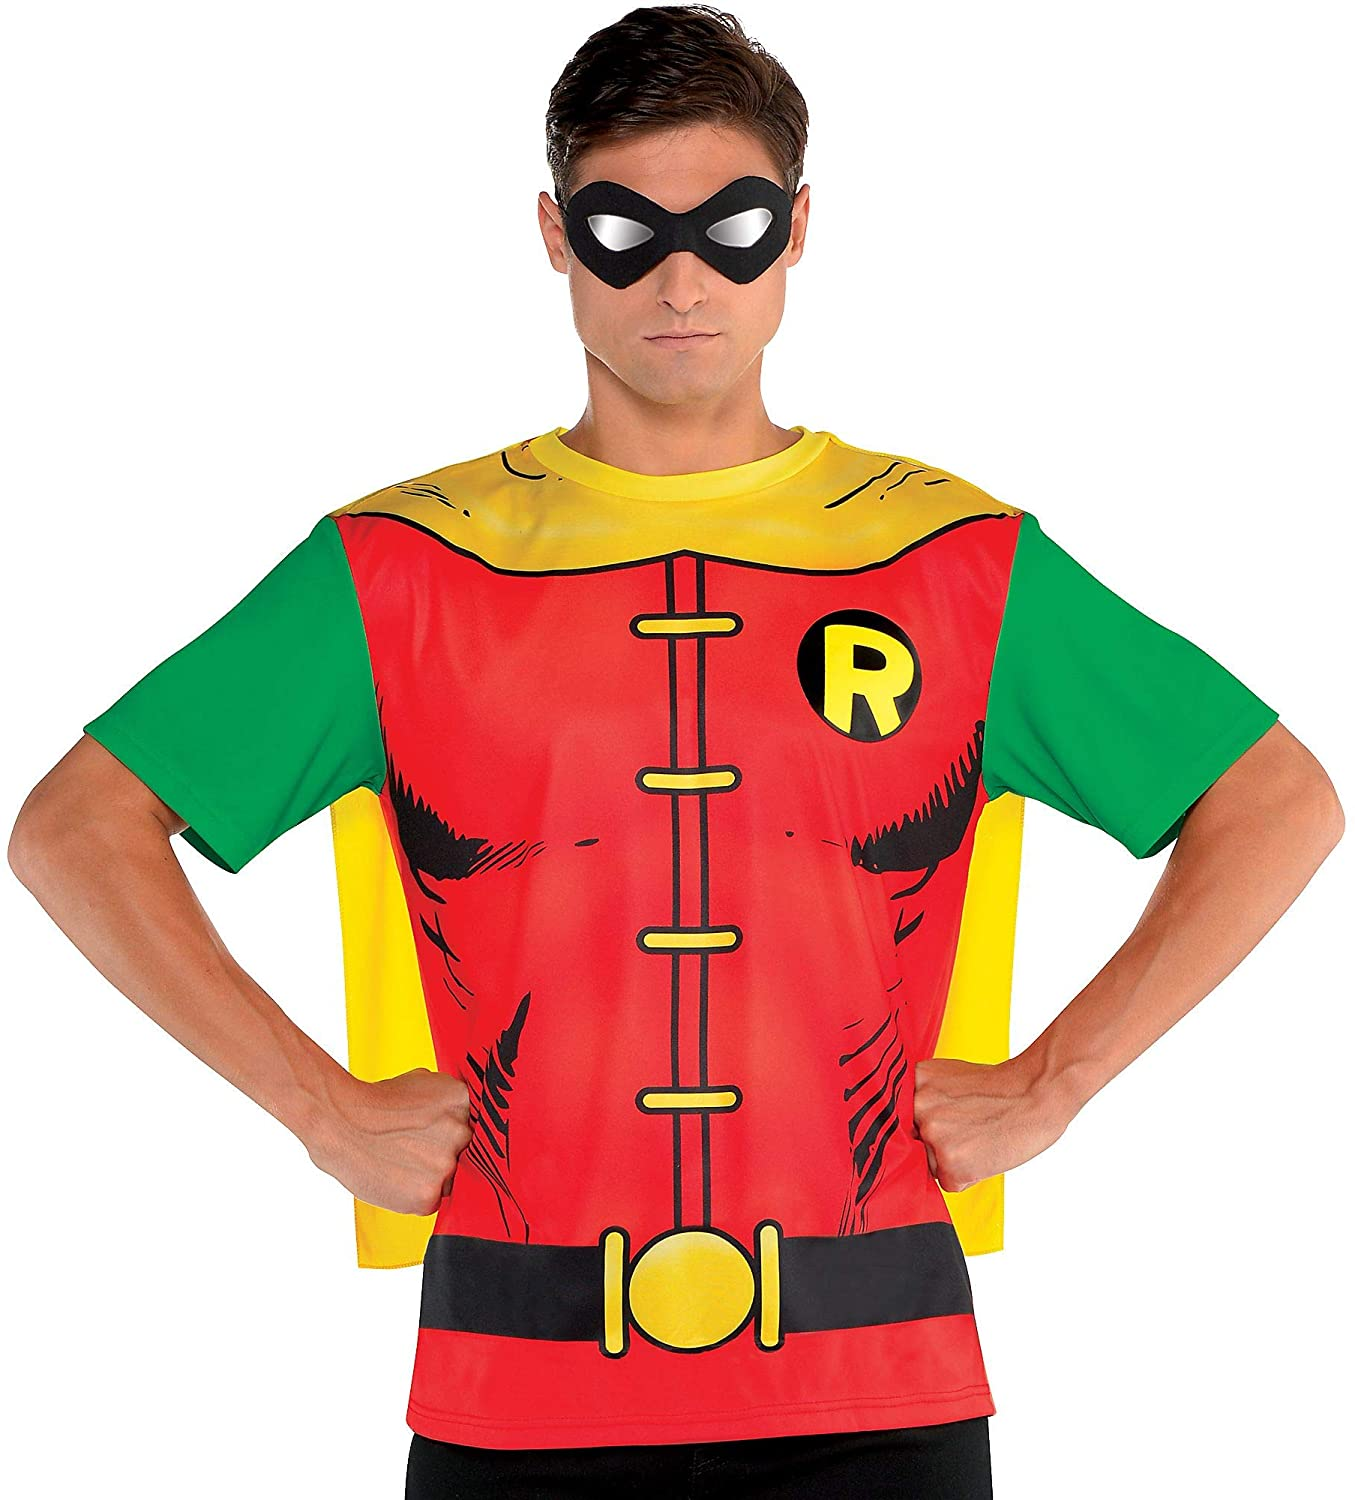 Suit Yourself Batman Robin T-Shirt with Cape for Adults, Size Medium, Red and Green with an Attached Yellow Cape